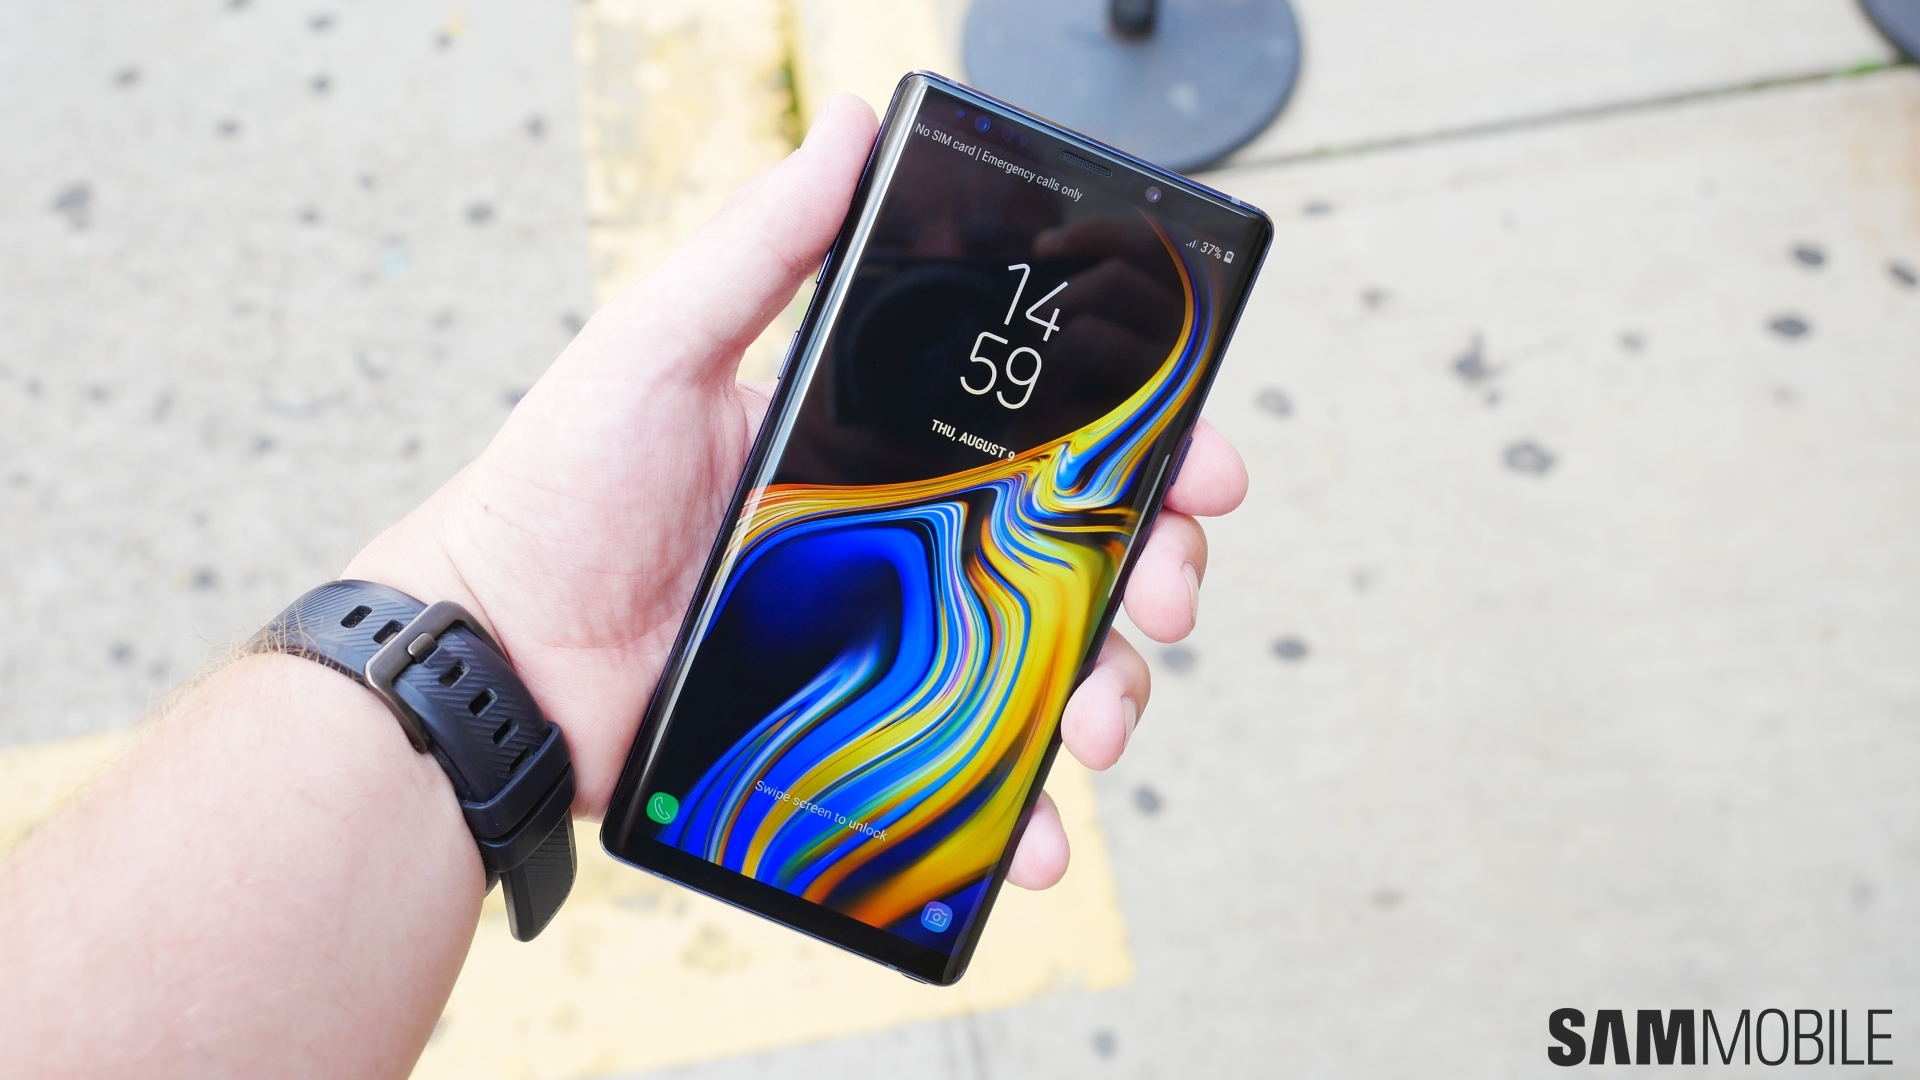 There's a new update for the Galaxy Note 9 in Asia and Europe